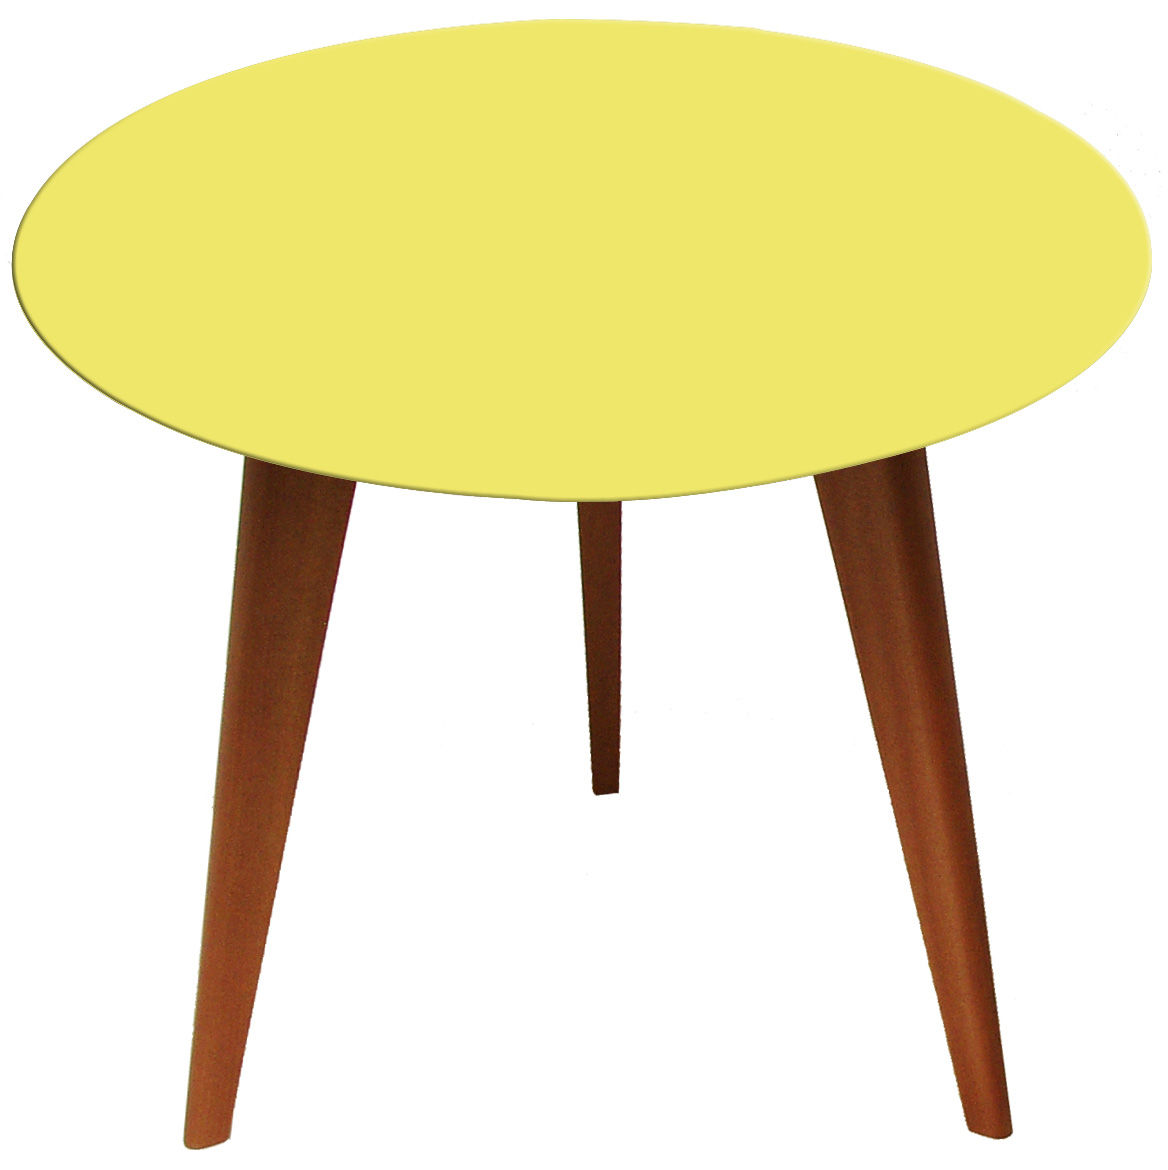 lalinde coffee table round large 55 cm yellow top. Black Bedroom Furniture Sets. Home Design Ideas